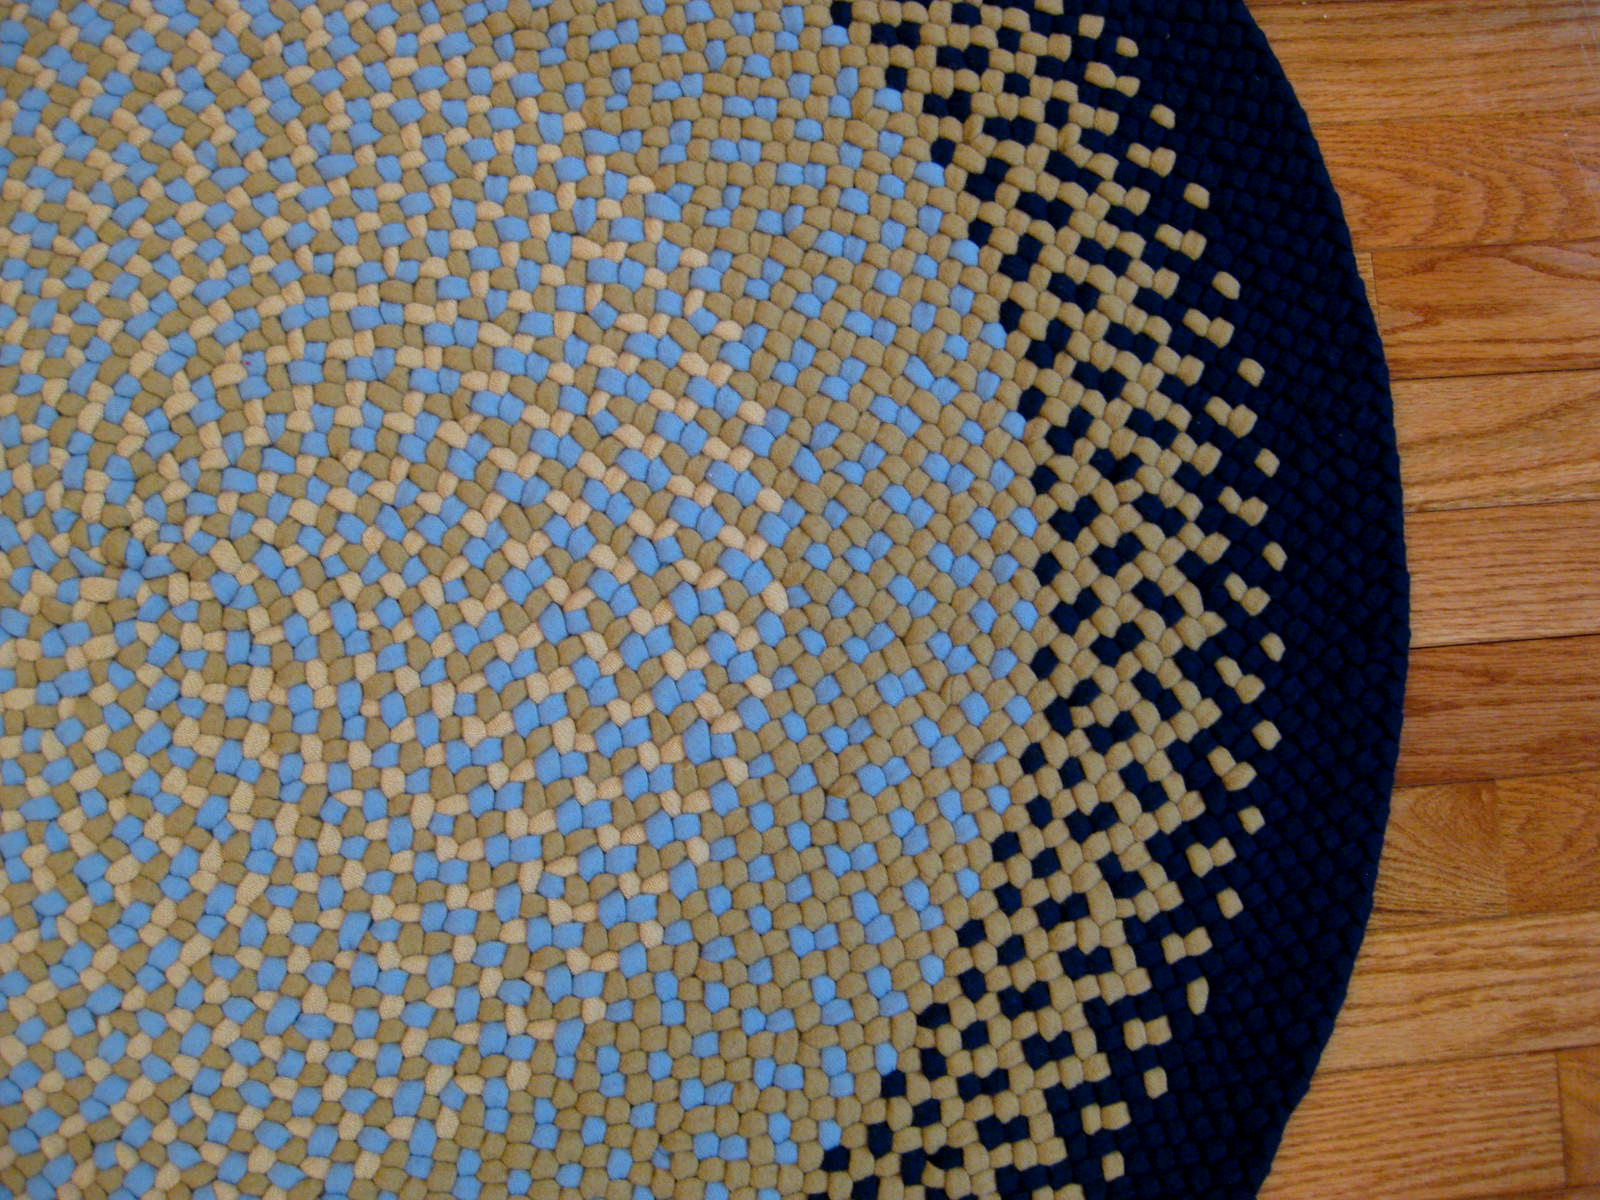 Chic braided rug for floorings and rugs ideas with round braided rugs and braided area rugs